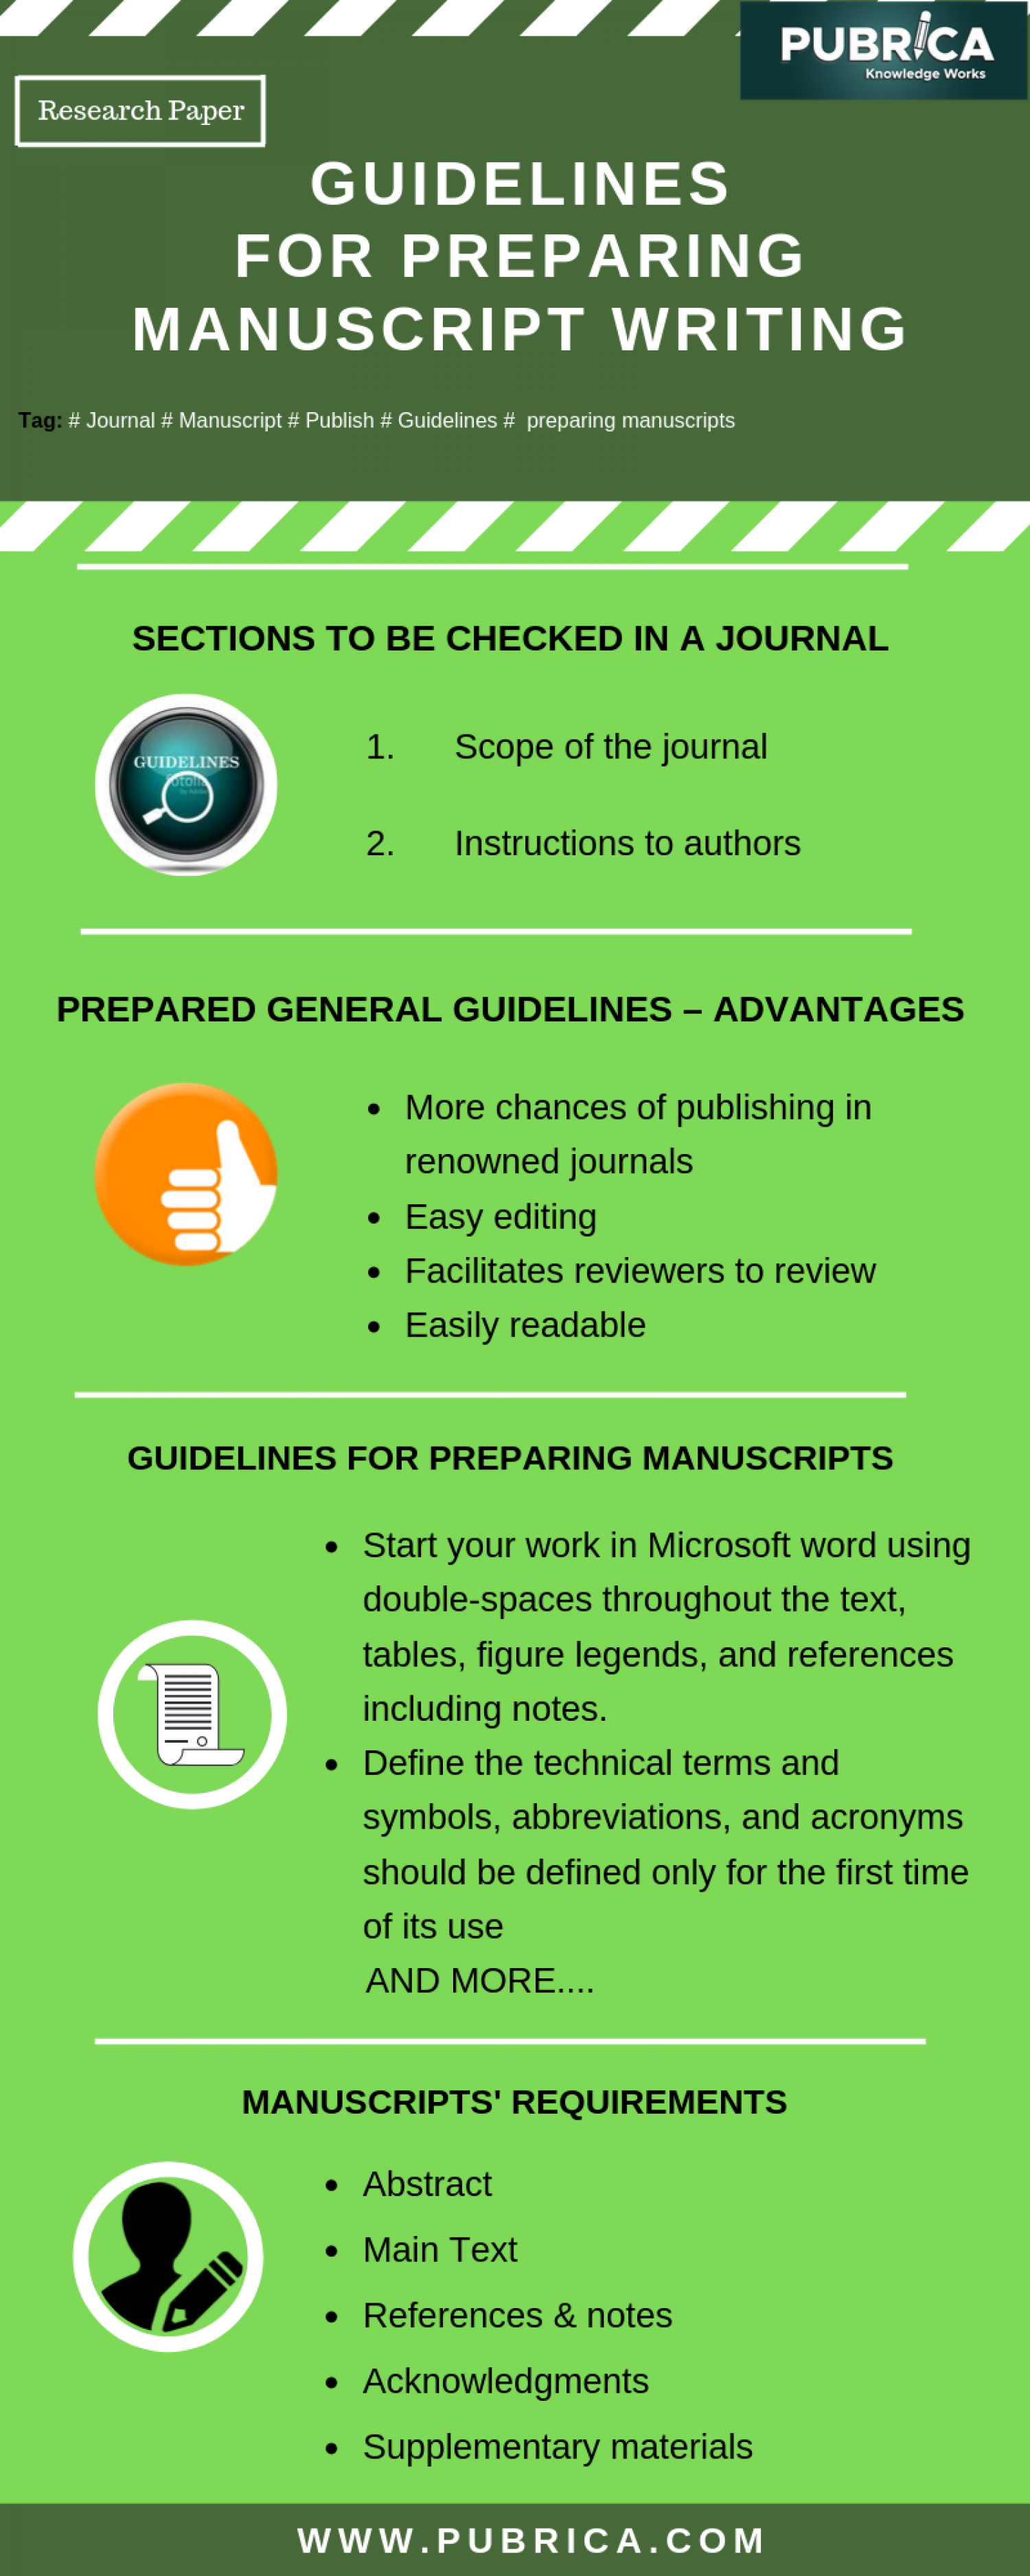 How to write quality Manuscripts - Scientific Research Infographic